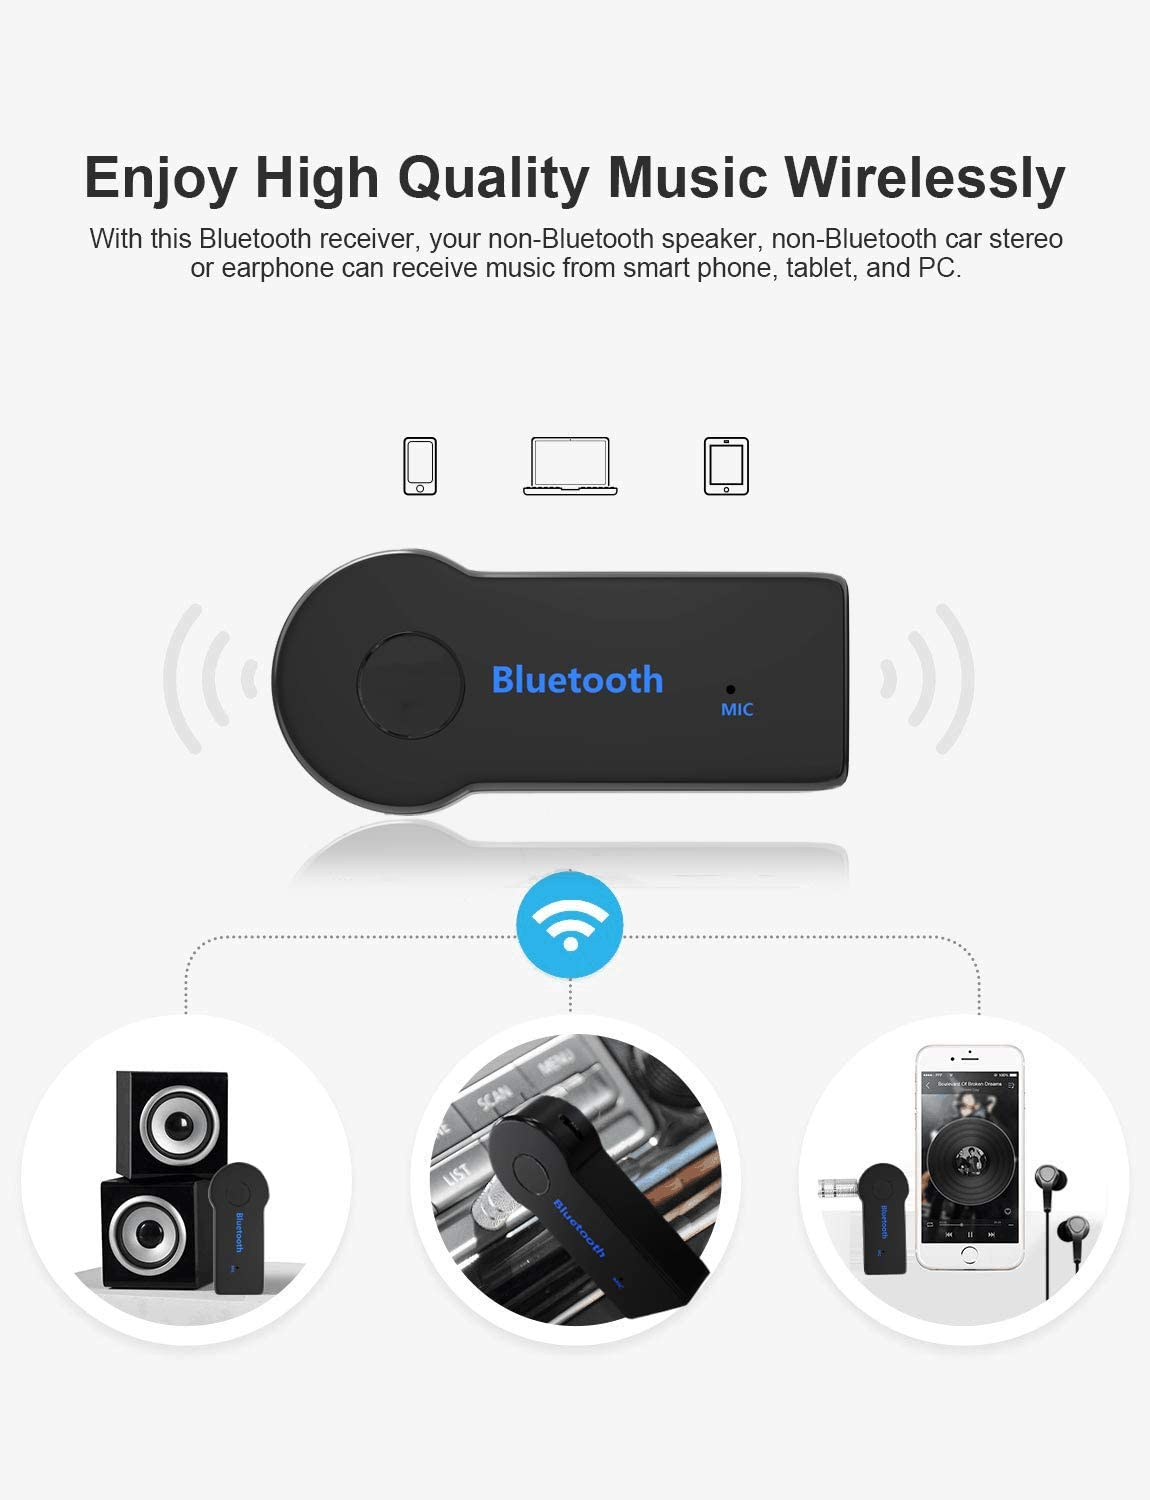 for Car//Home Stereo Sound System /… Bluetooth 4.2, A2DP, Built-in Microphone NHJN Bluetooth Receiver//Car Kit,Portable Wireless Car Audio Adapter 3.5mm Aux Stereo Output